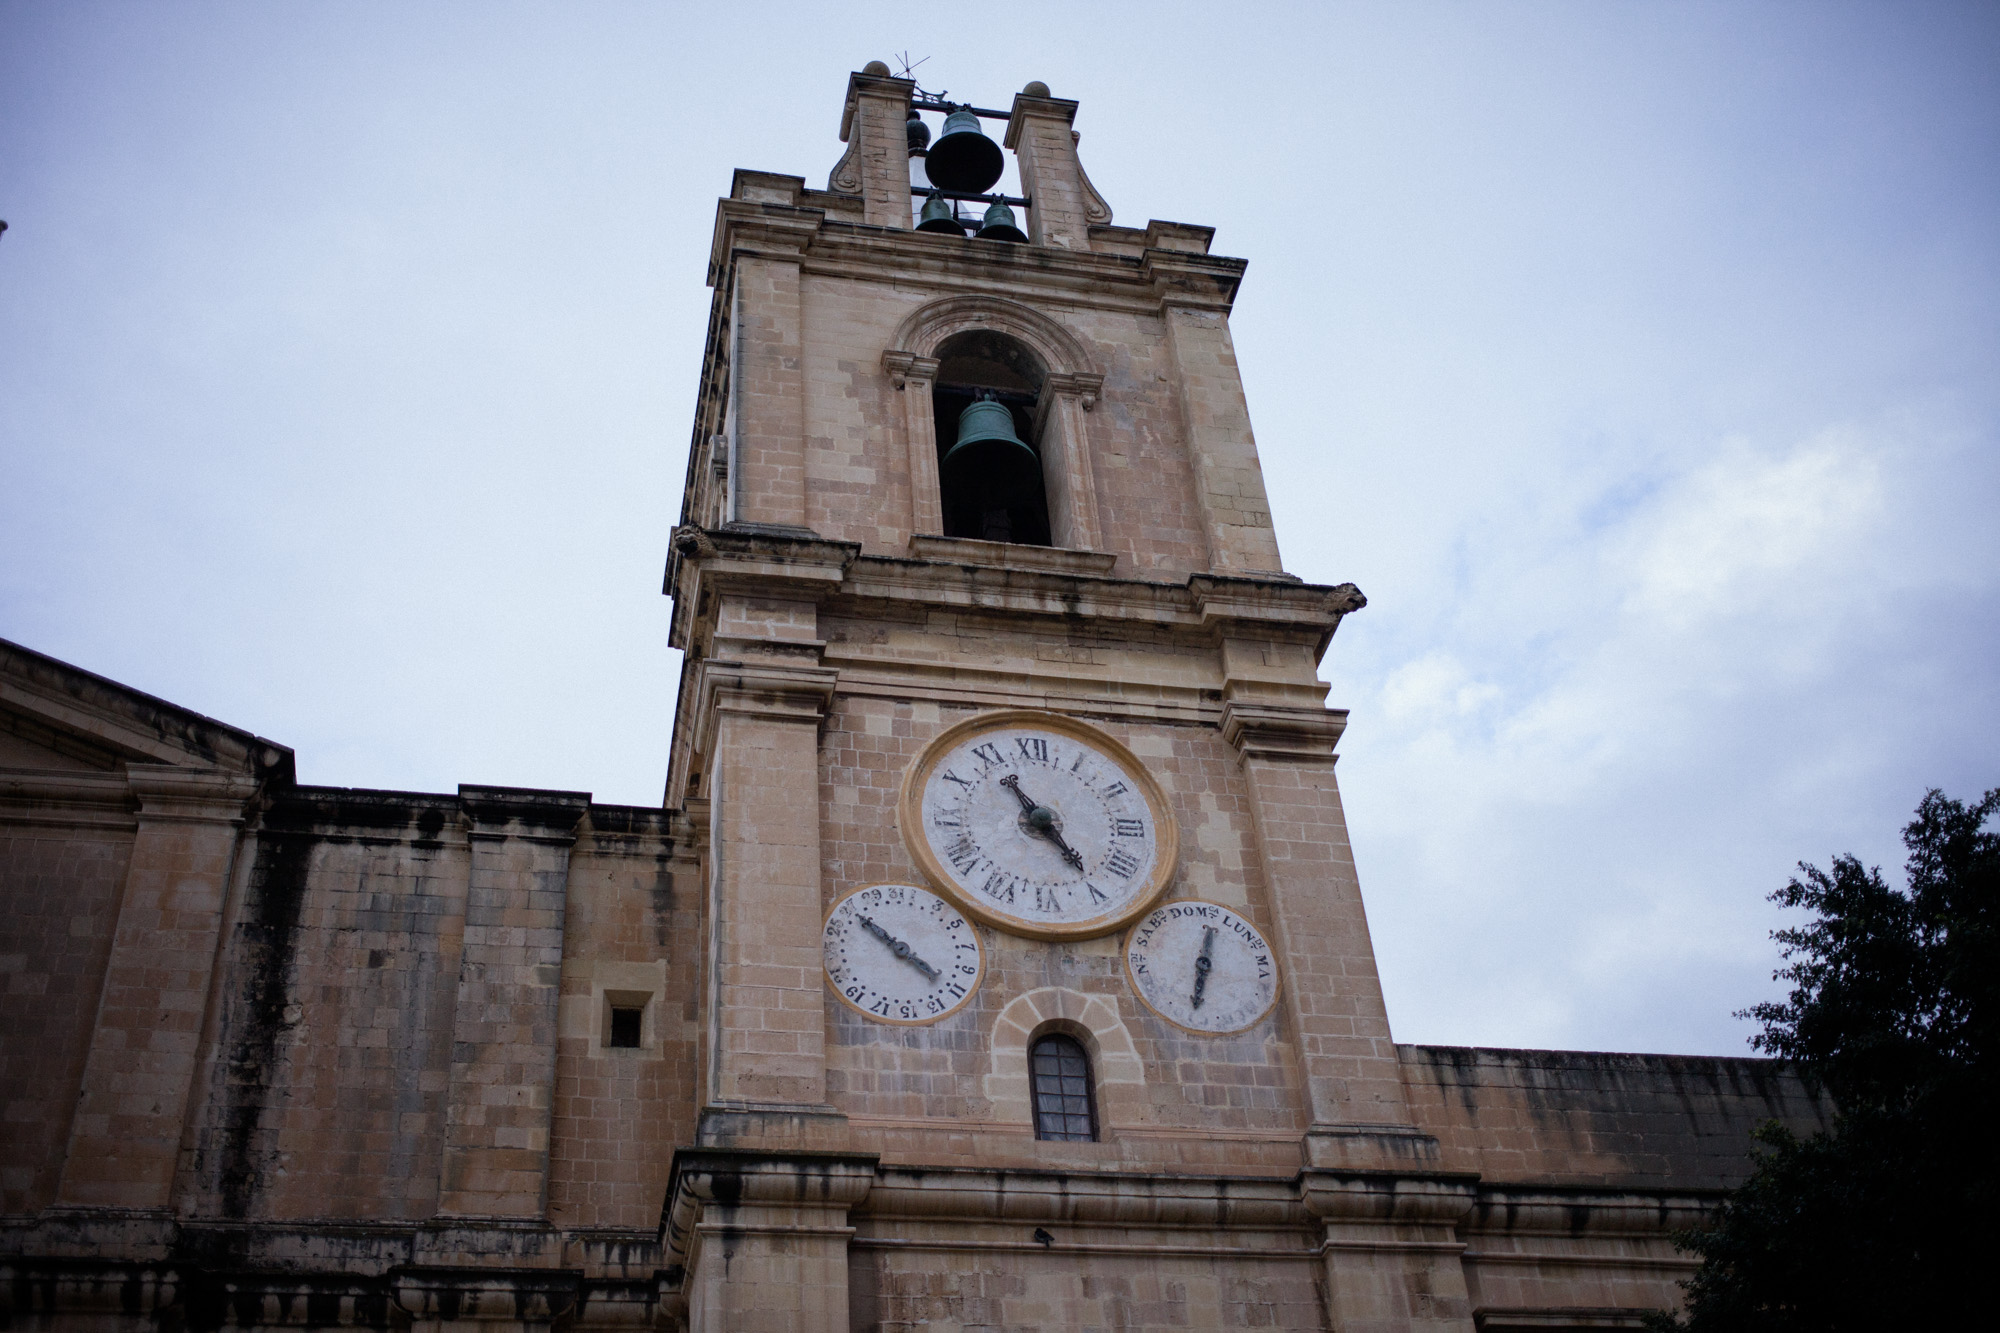 A one handed clock, in the middle of Valetta